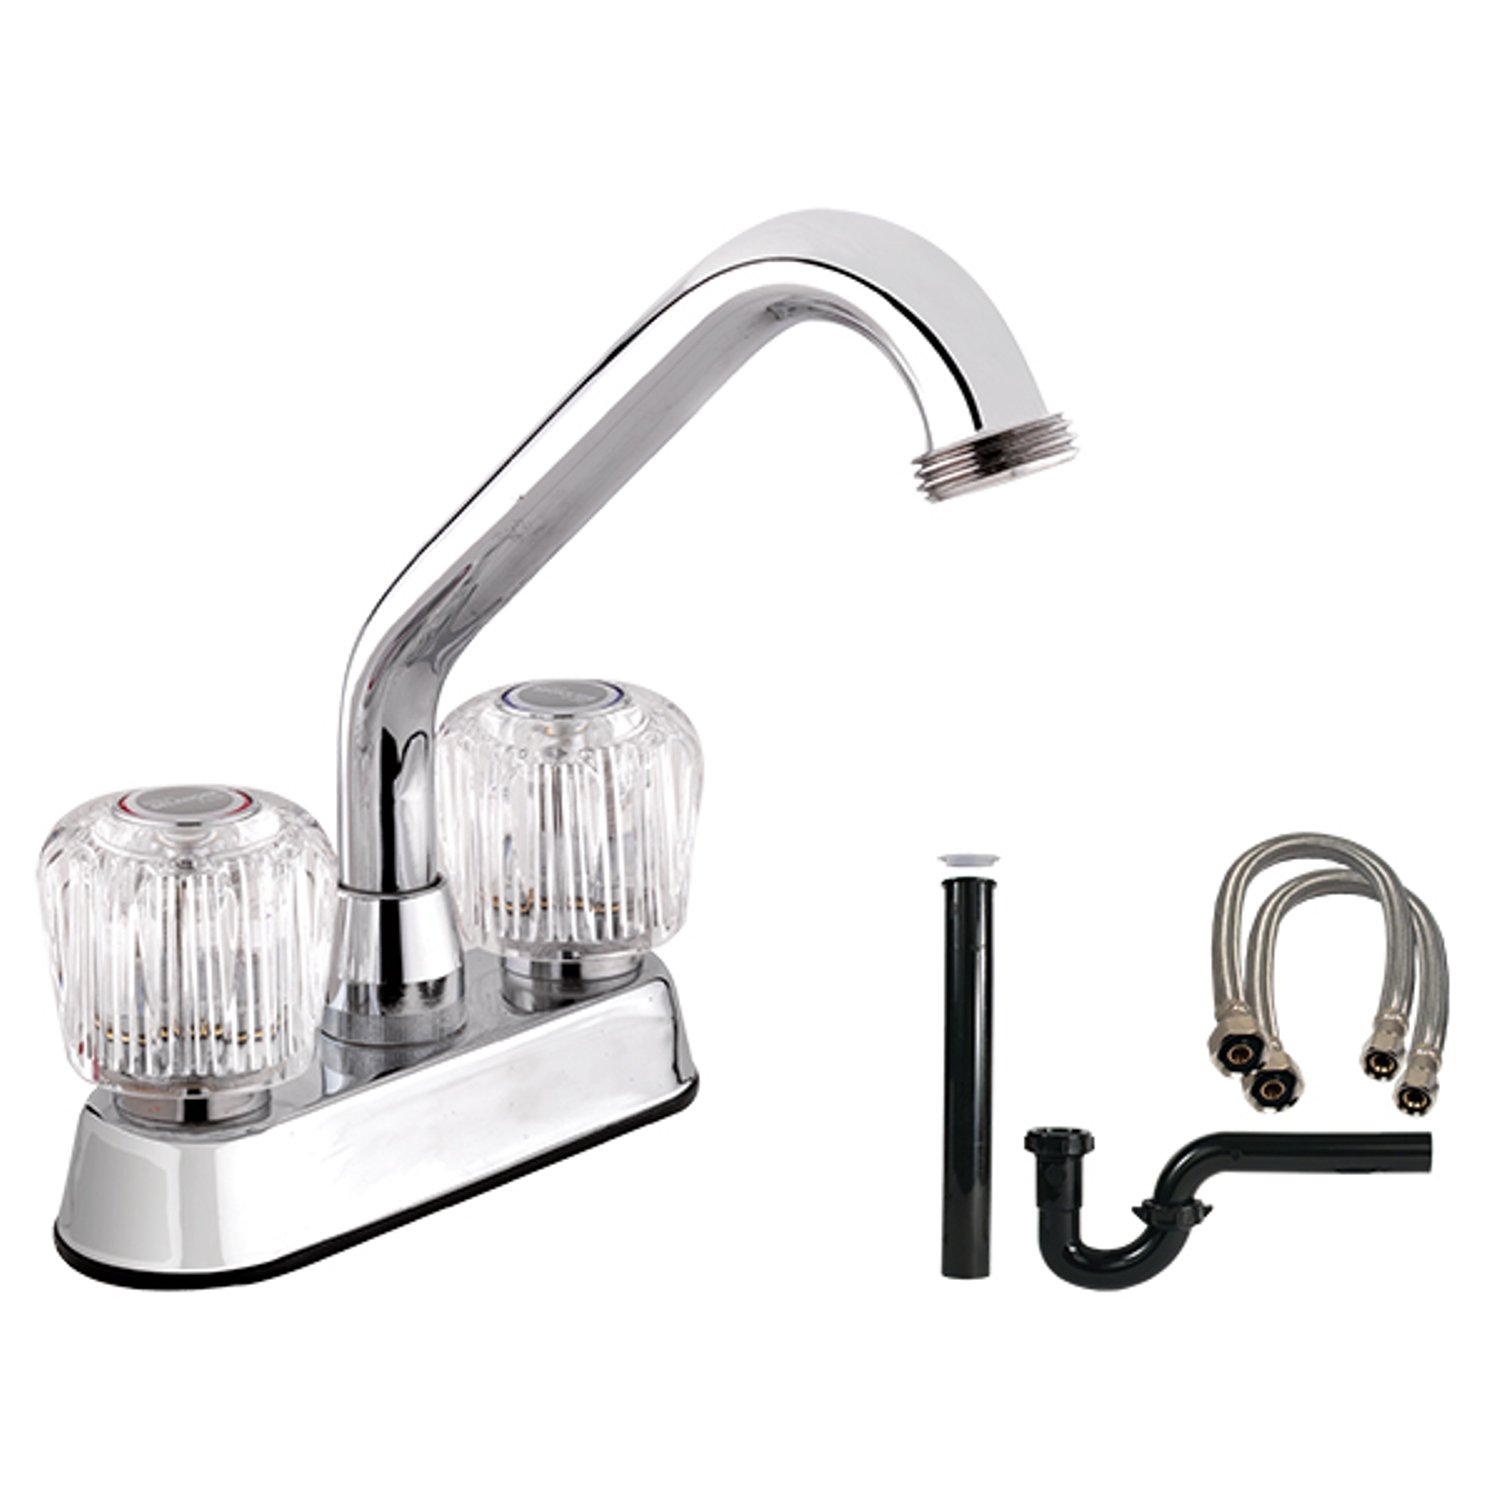 Belanger 2940WKIT Laundry Tub Faucet with Complete Installation Kit with Dual Round Acrylic Handles, Polished Chrome